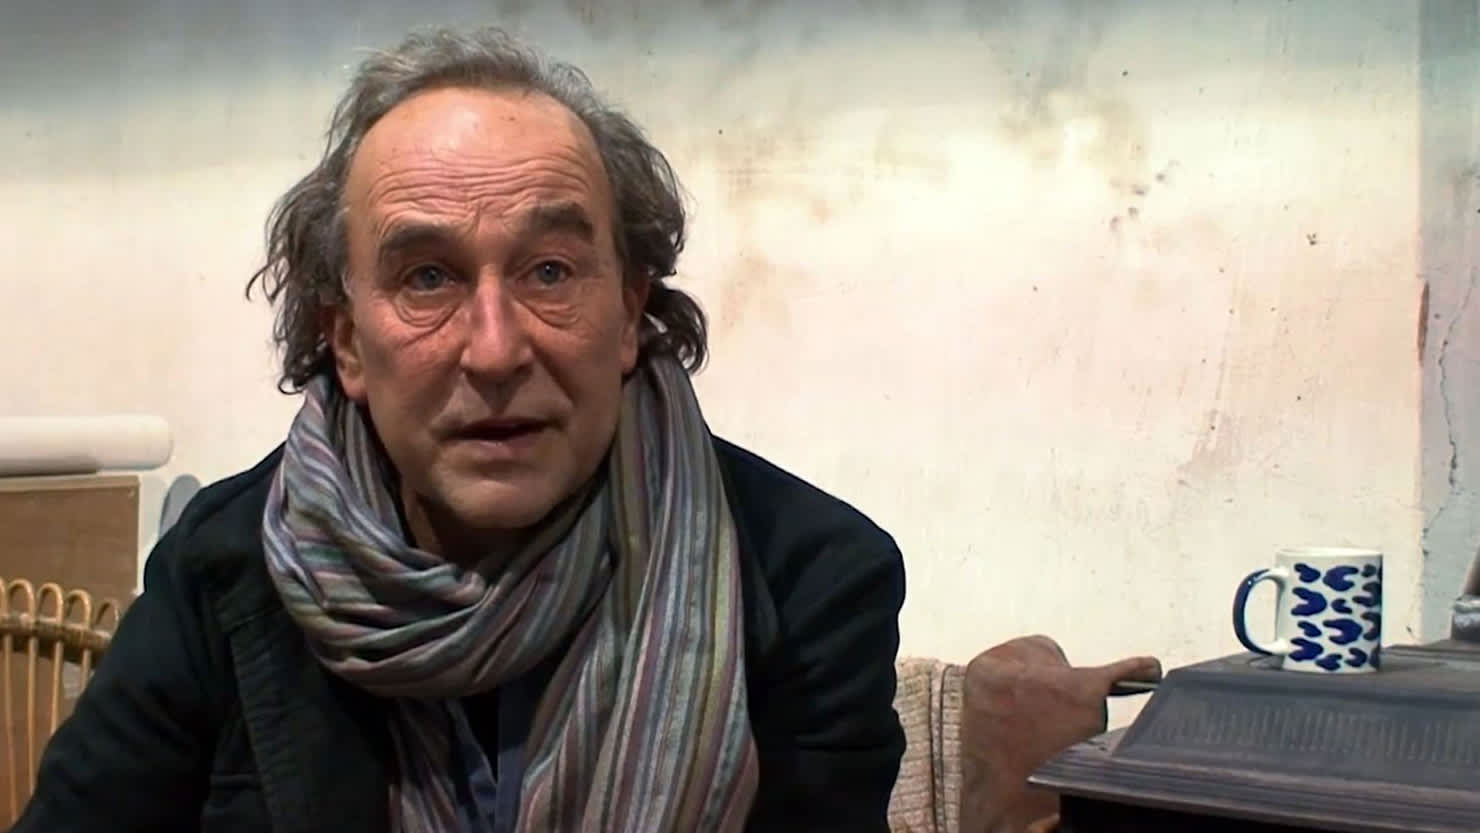 Peter Randall-Page: in the process of [doing something]